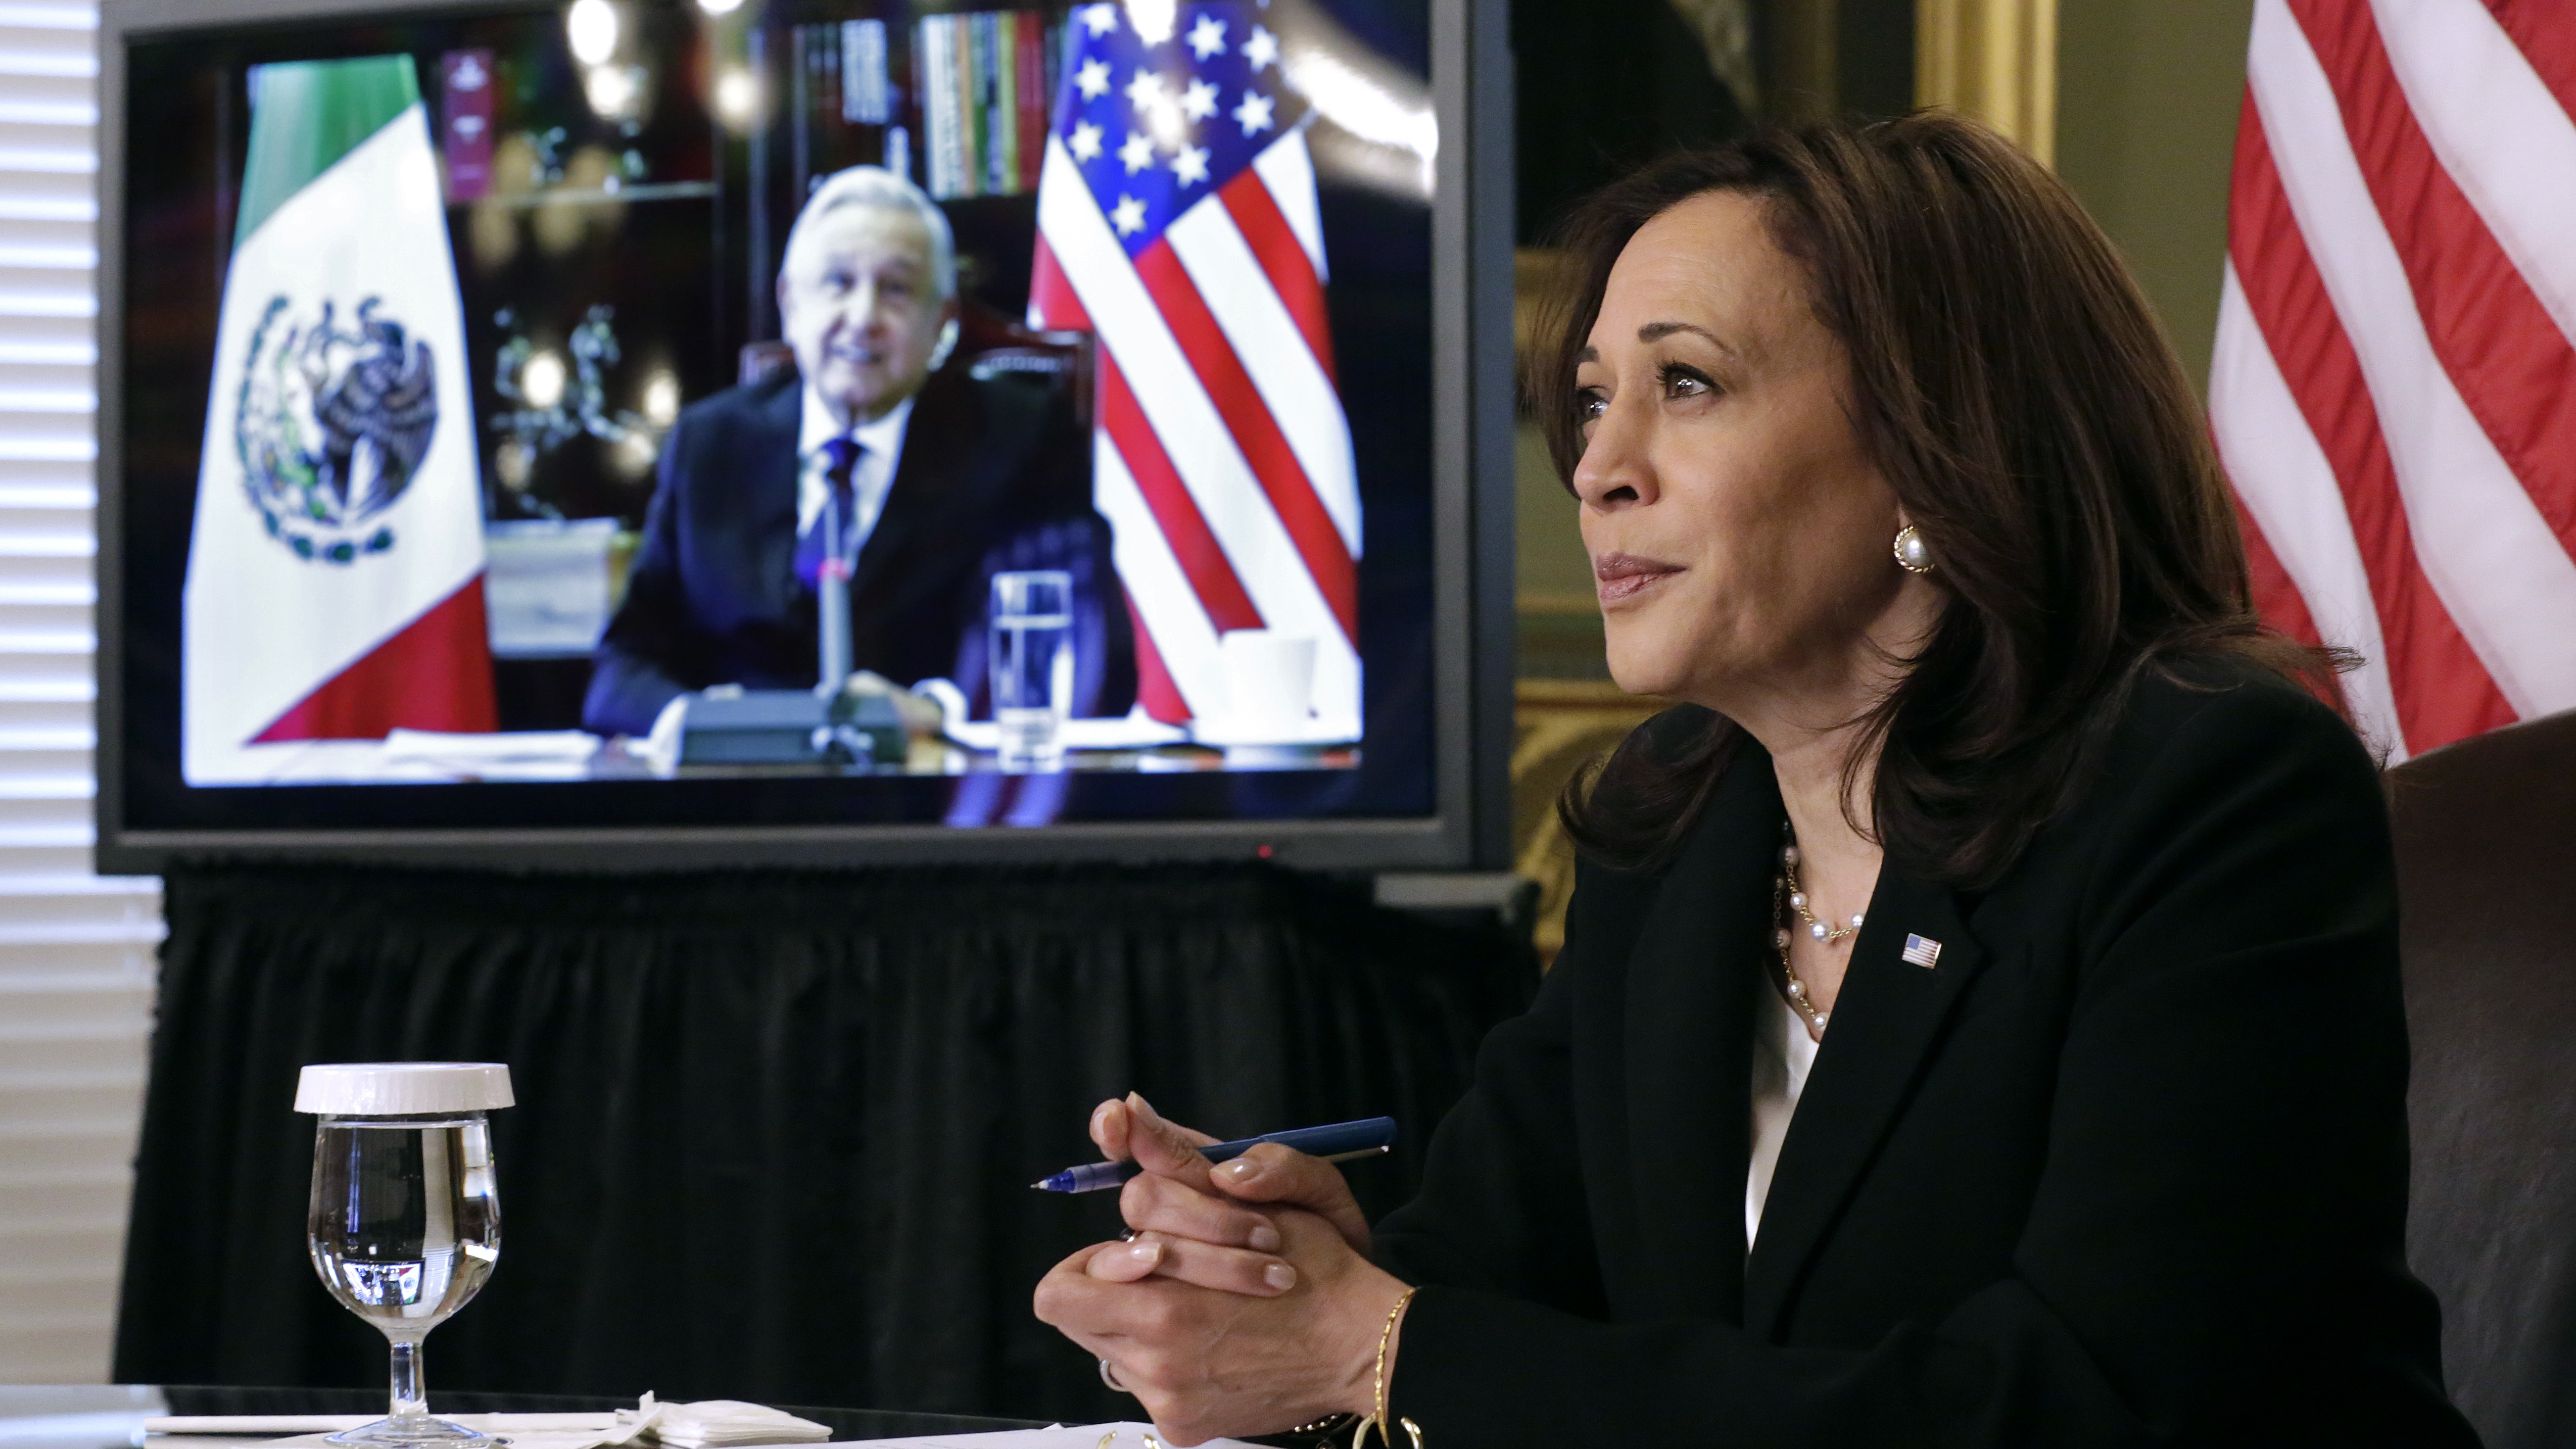 Vice President Harris has met virtually with Mexican President Andrés Manuel López Obrador, but on Tuesday, they will meet in person in Mexico City to discuss immigration issues.